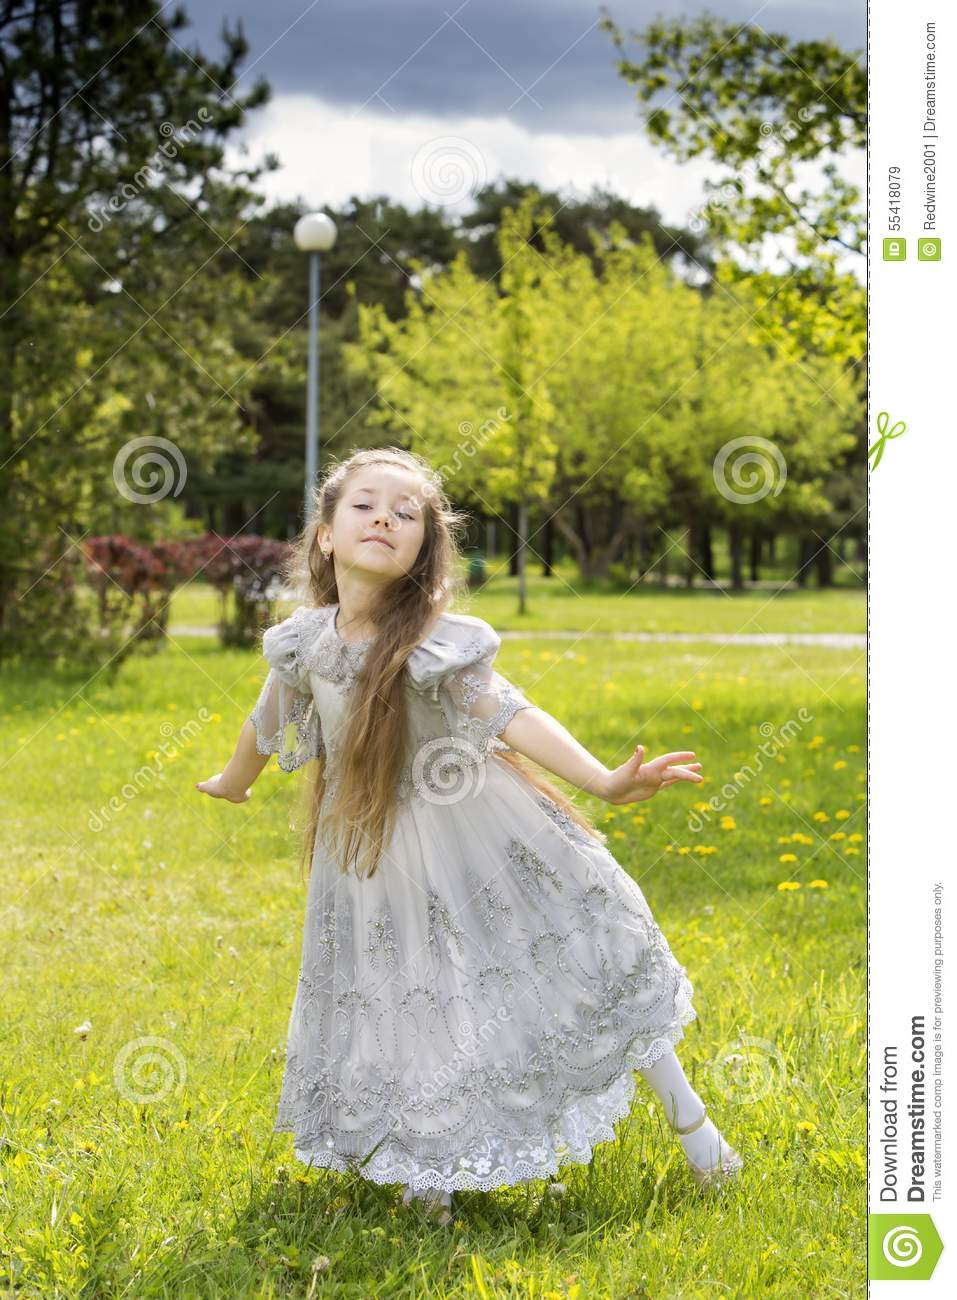 Fairy Ready To Fly Back To Wonderland Stock Image - Image of family